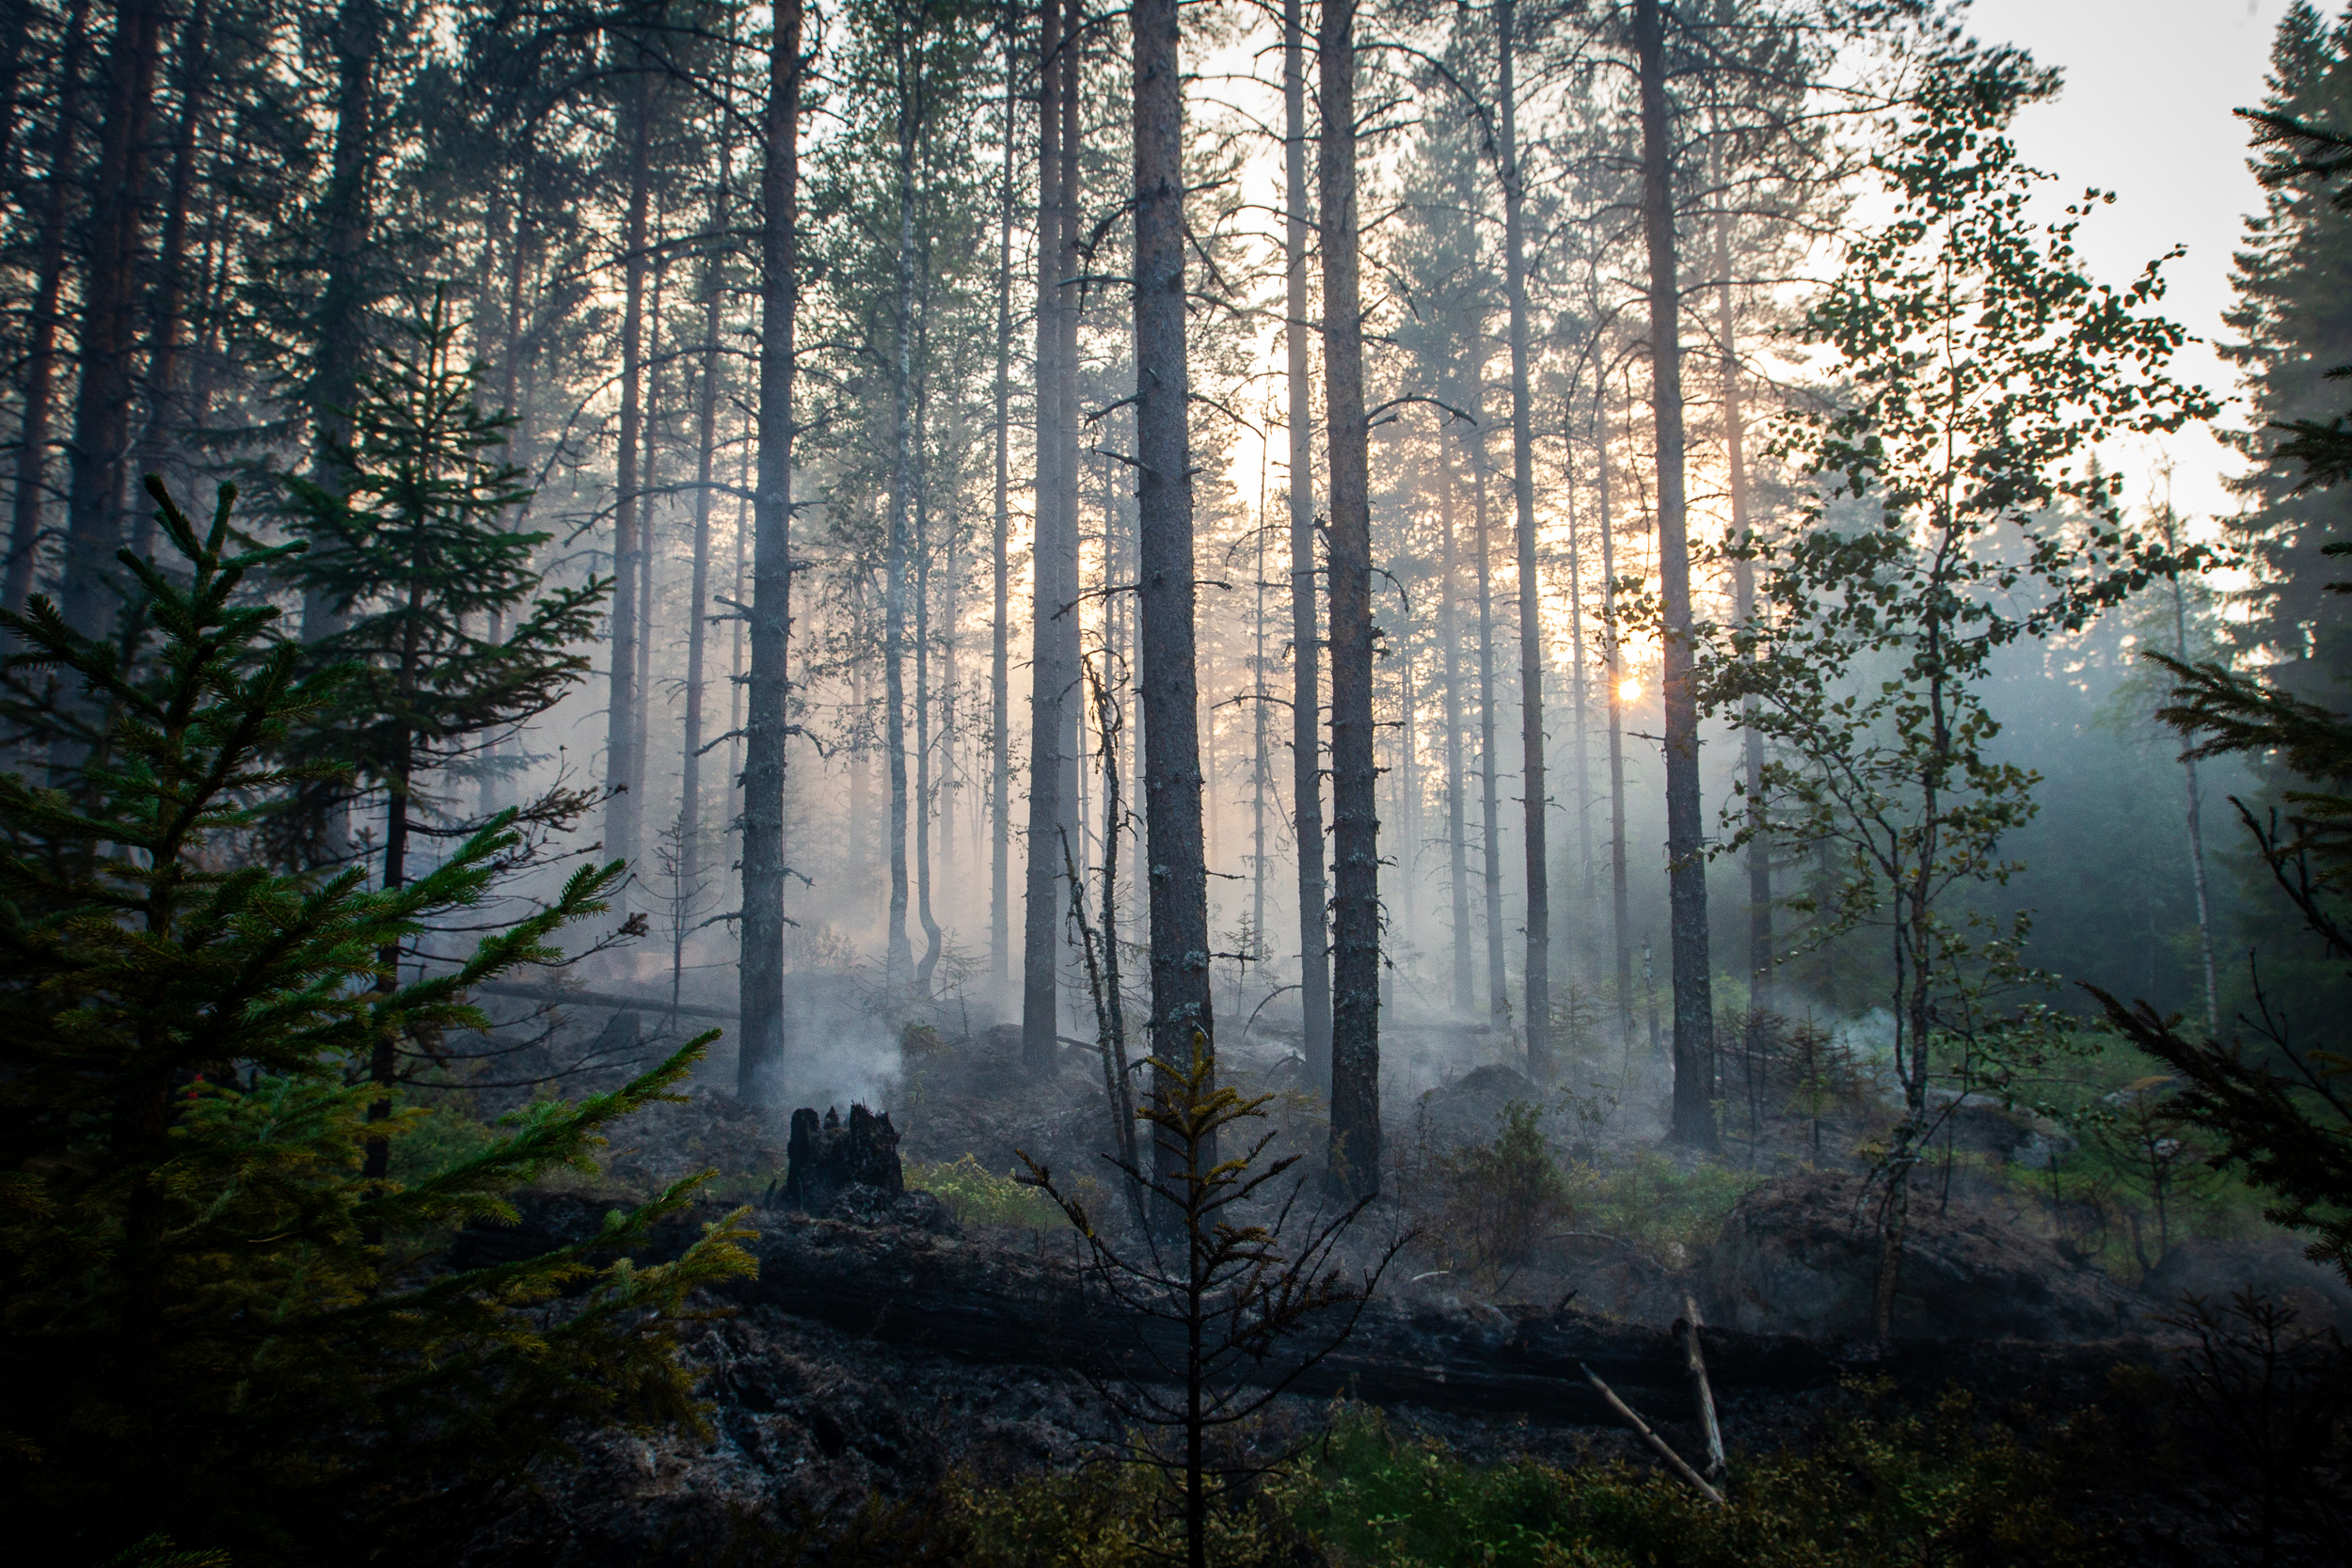 Evening falls over an area where a forest fire recently raged. Night means colder temperatures and less dramatic spread of the fire.